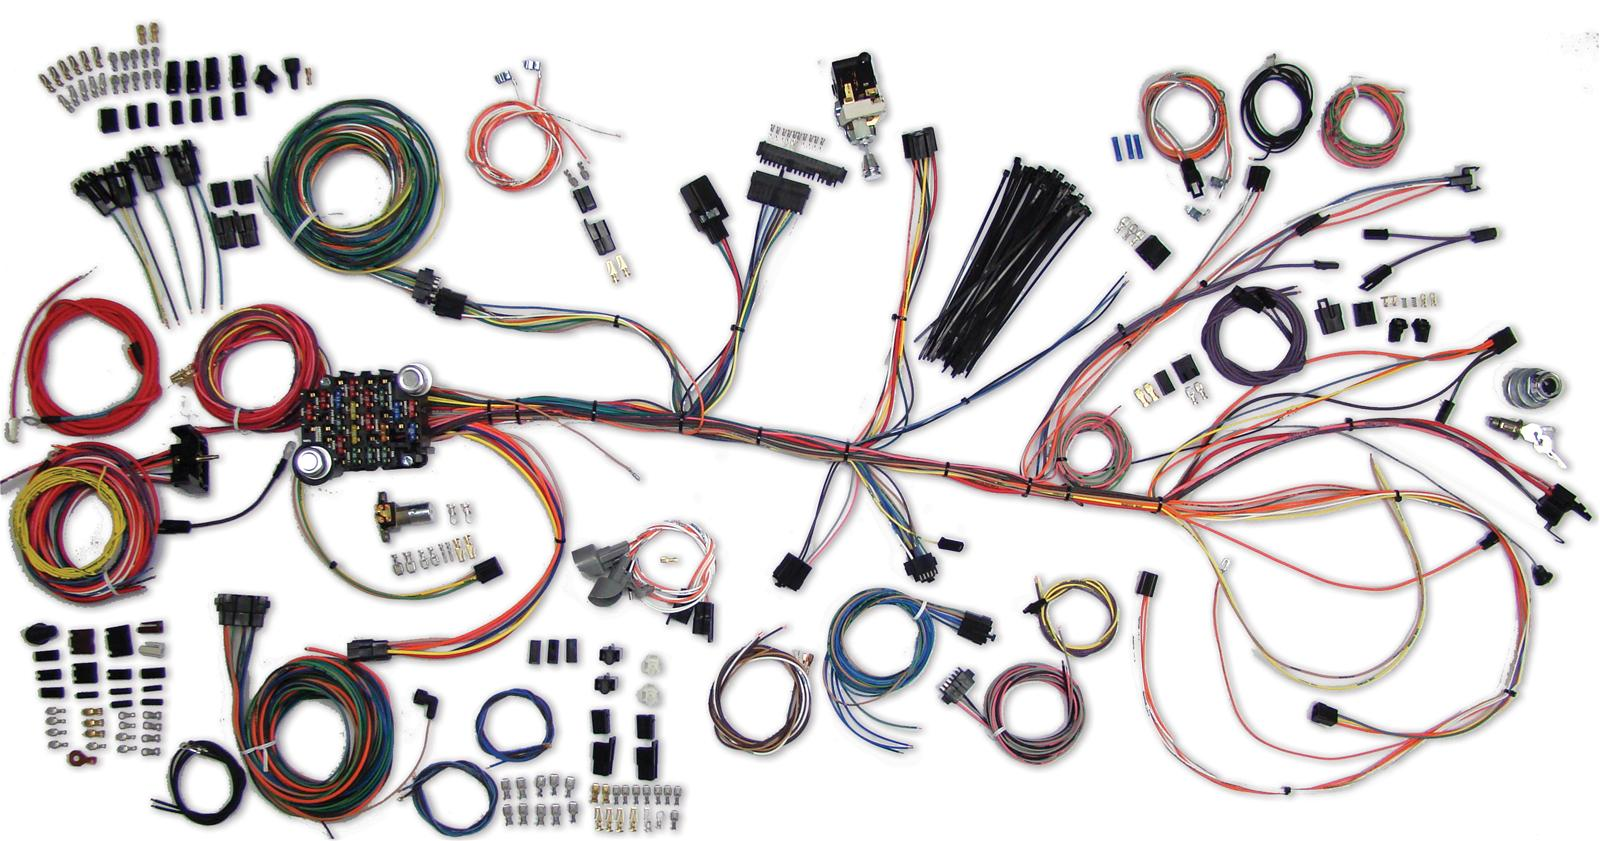 hight resolution of american autowire classic update series wiring harness kits 500981 free shipping on orders over 99